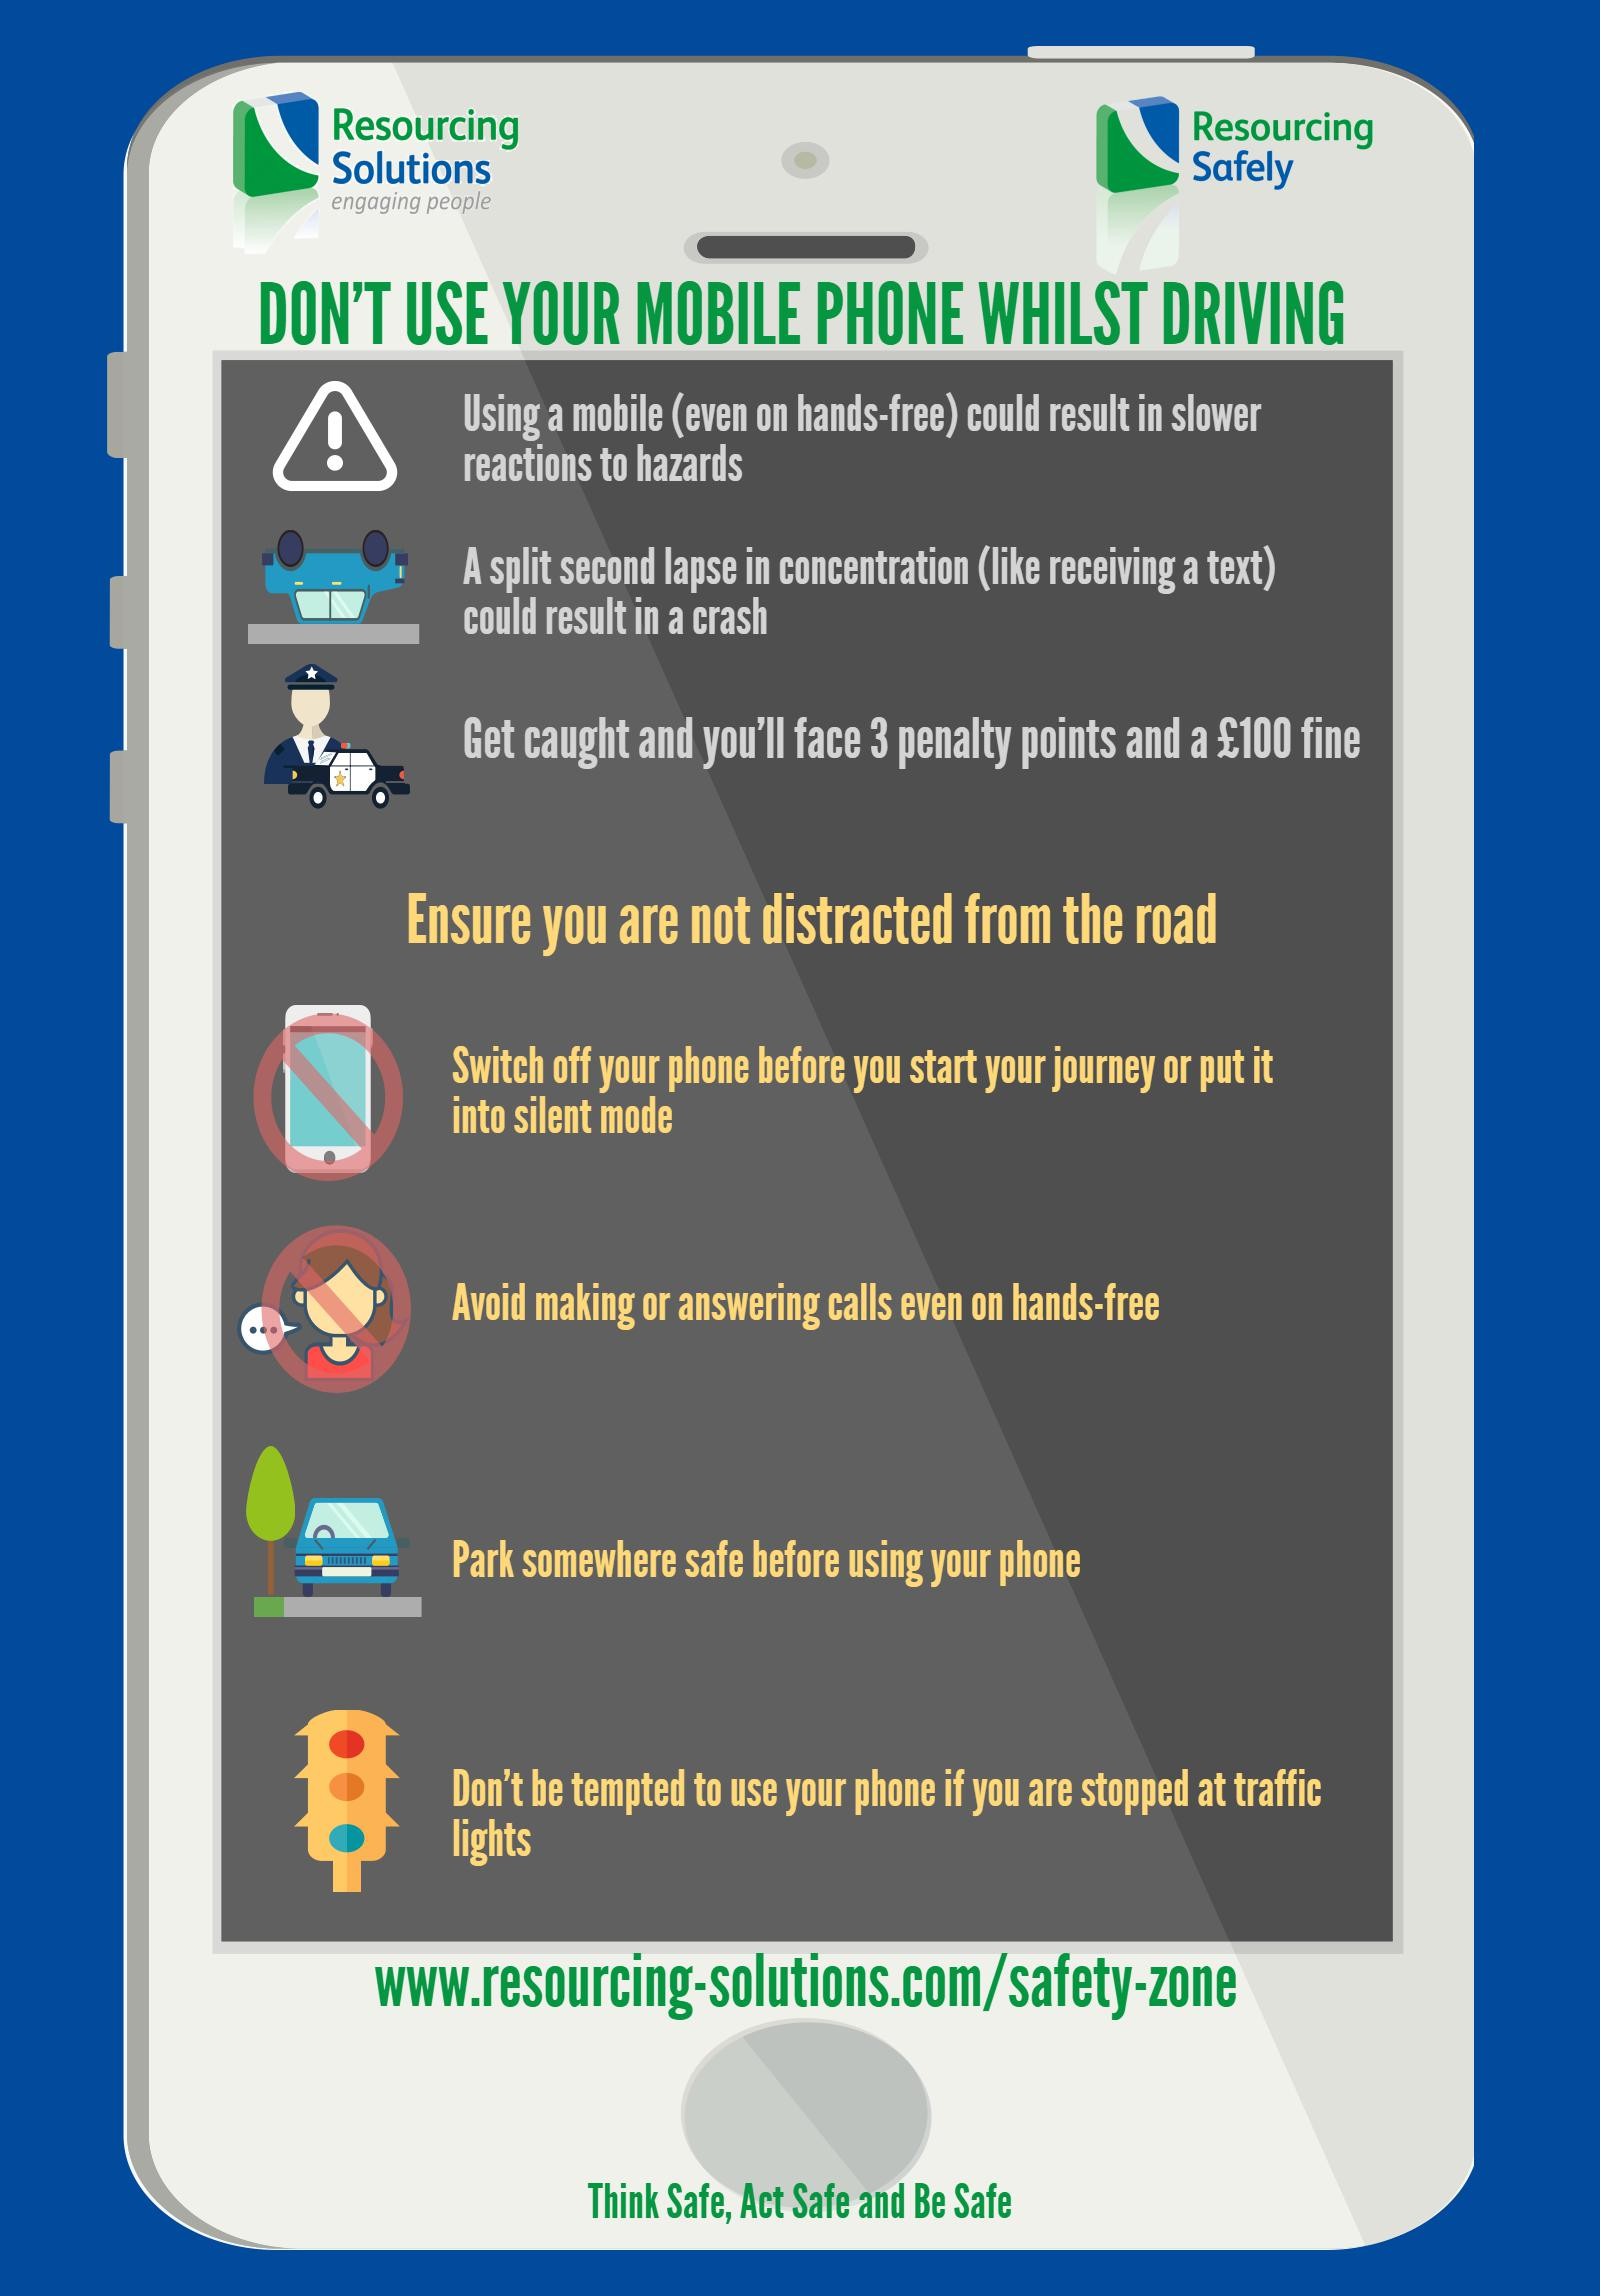 Don't use your mobile phone whilst driving